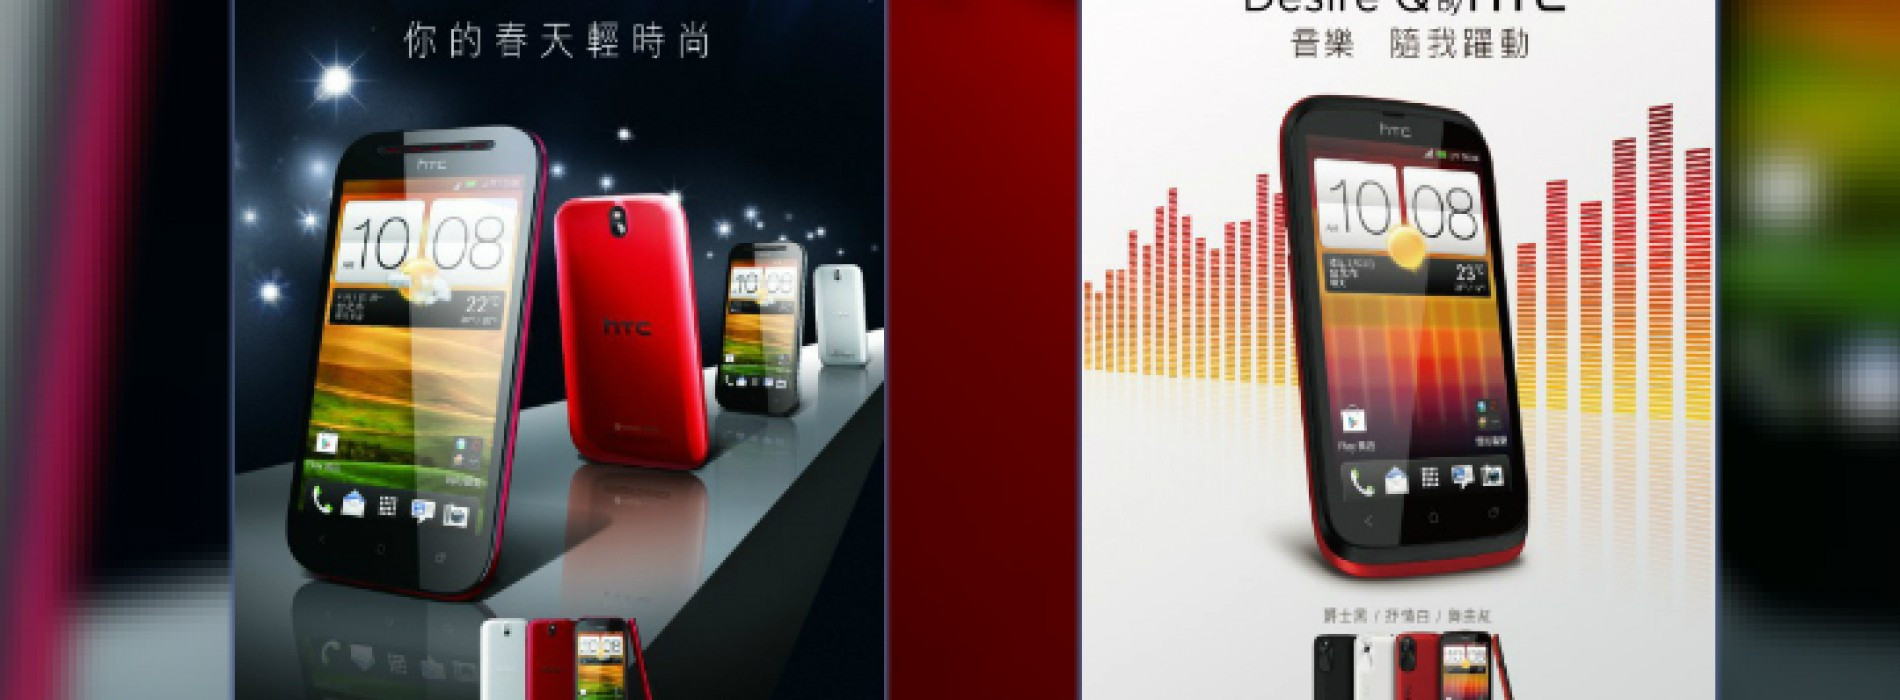 First details and images surface for HTC Desire P, Desire Q